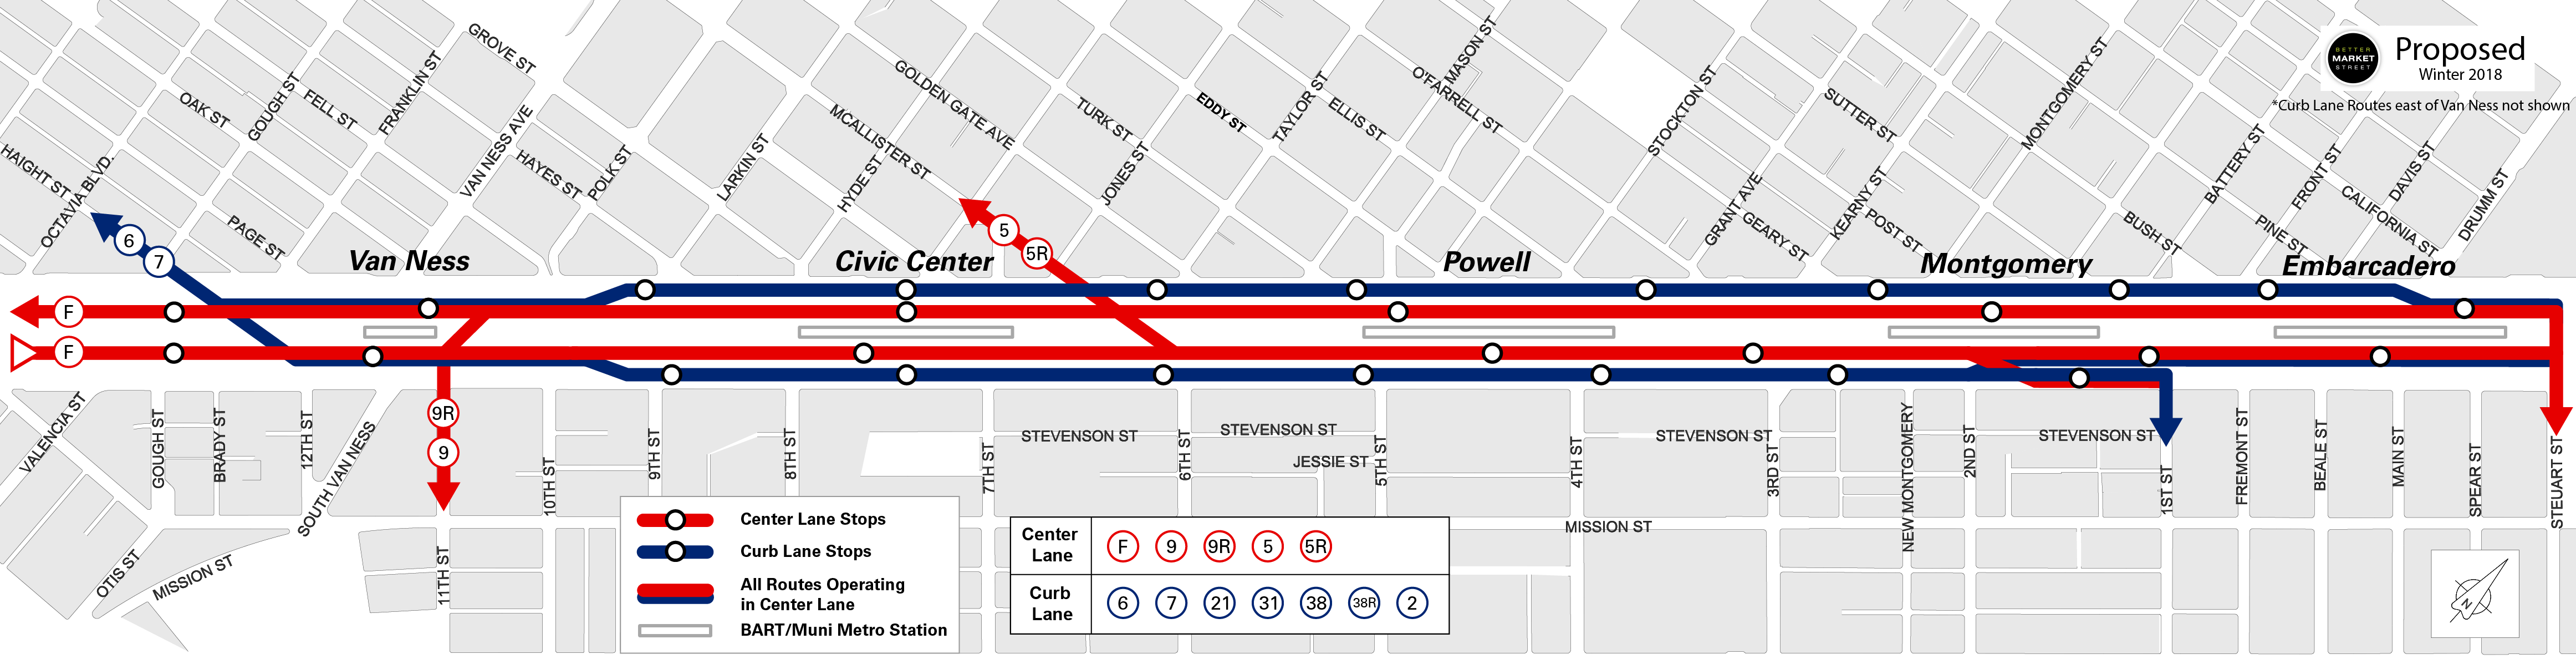 How Muni will run Market Street services in the future. Images: SFMTA